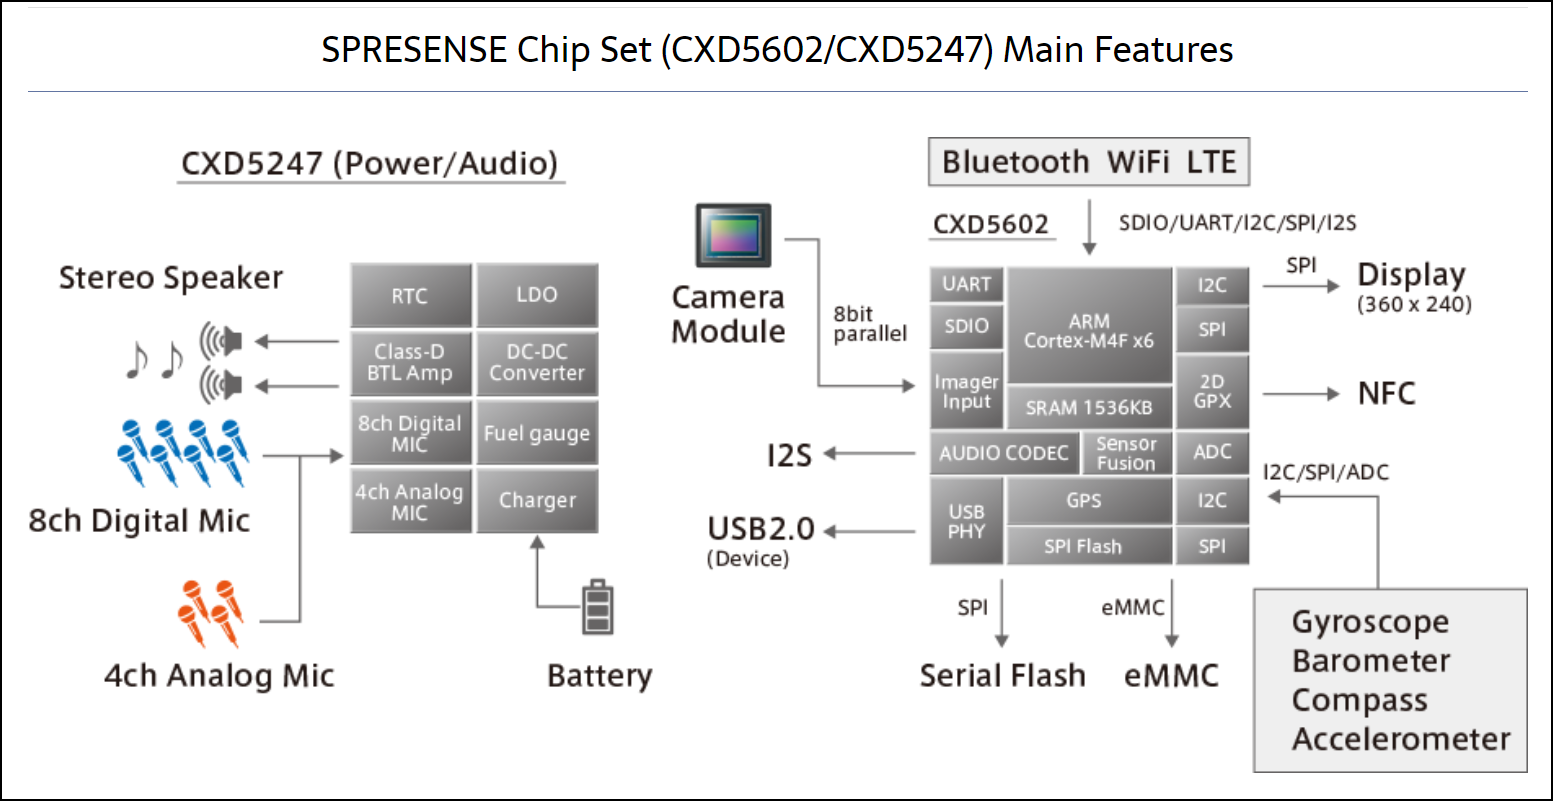 A figure outlining the architecture of the CXD5602 and CXD5247 computer chips.